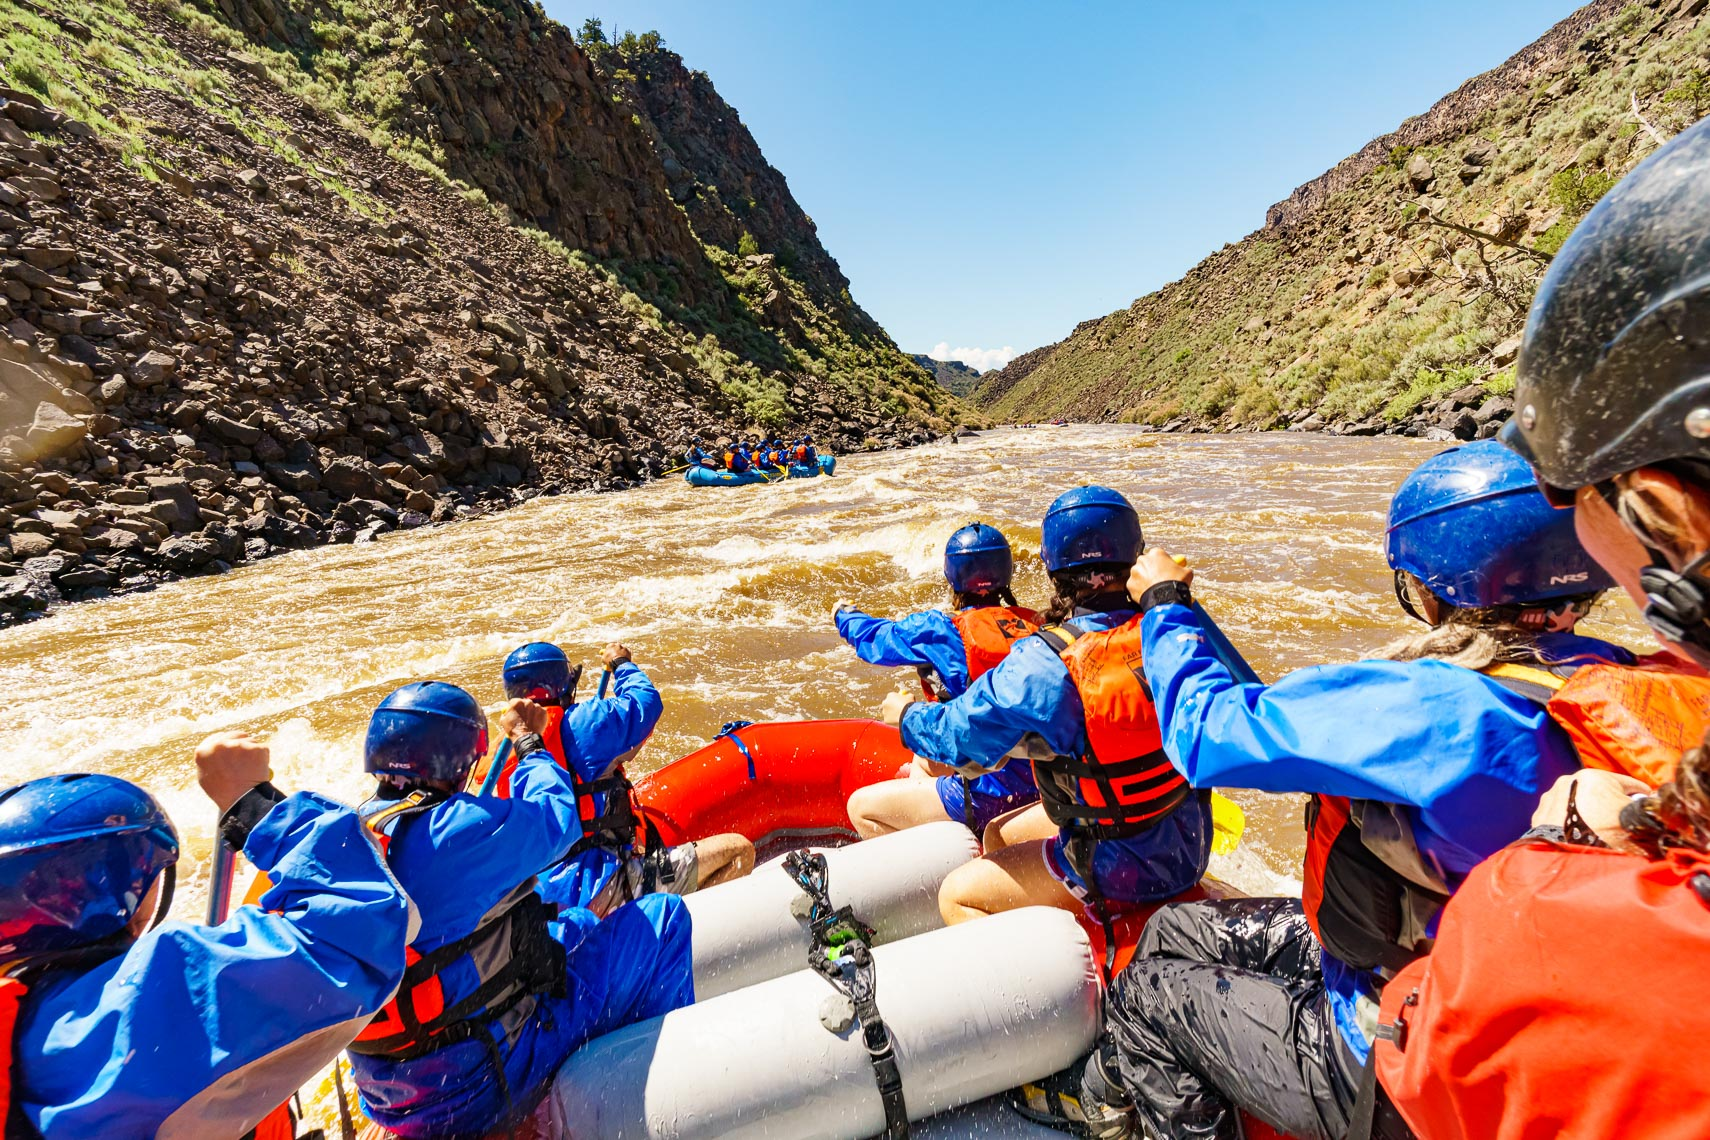 Taos Box Rafting in New Mexico | Michael DeYoung